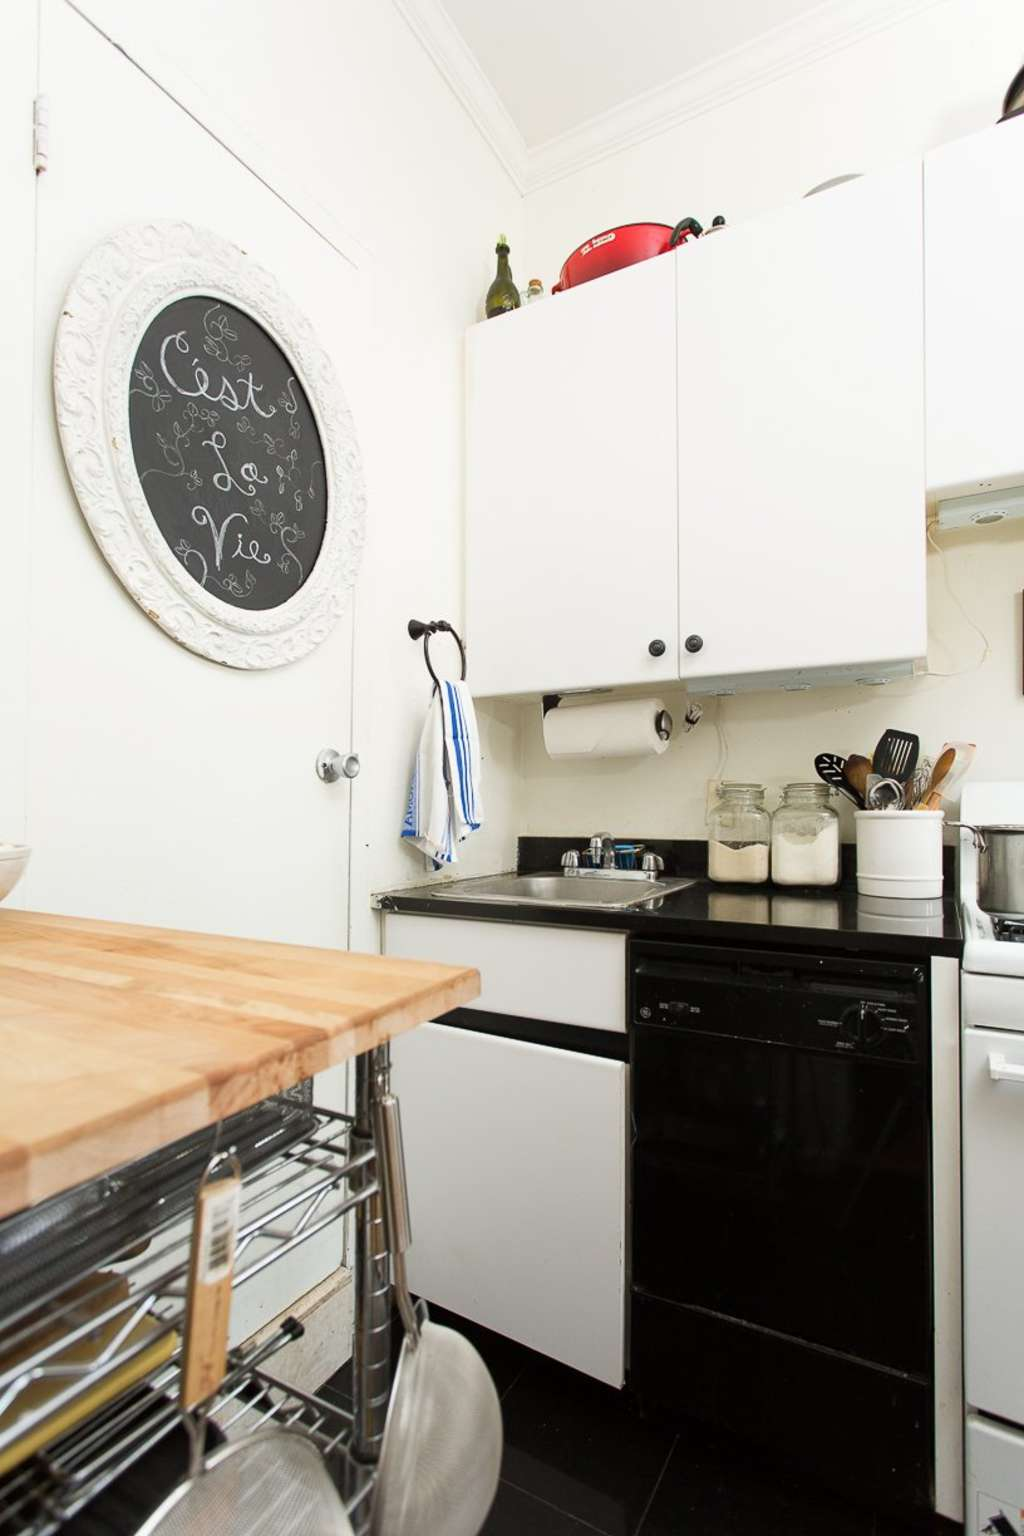 10 tips to help you get more countertop space in your